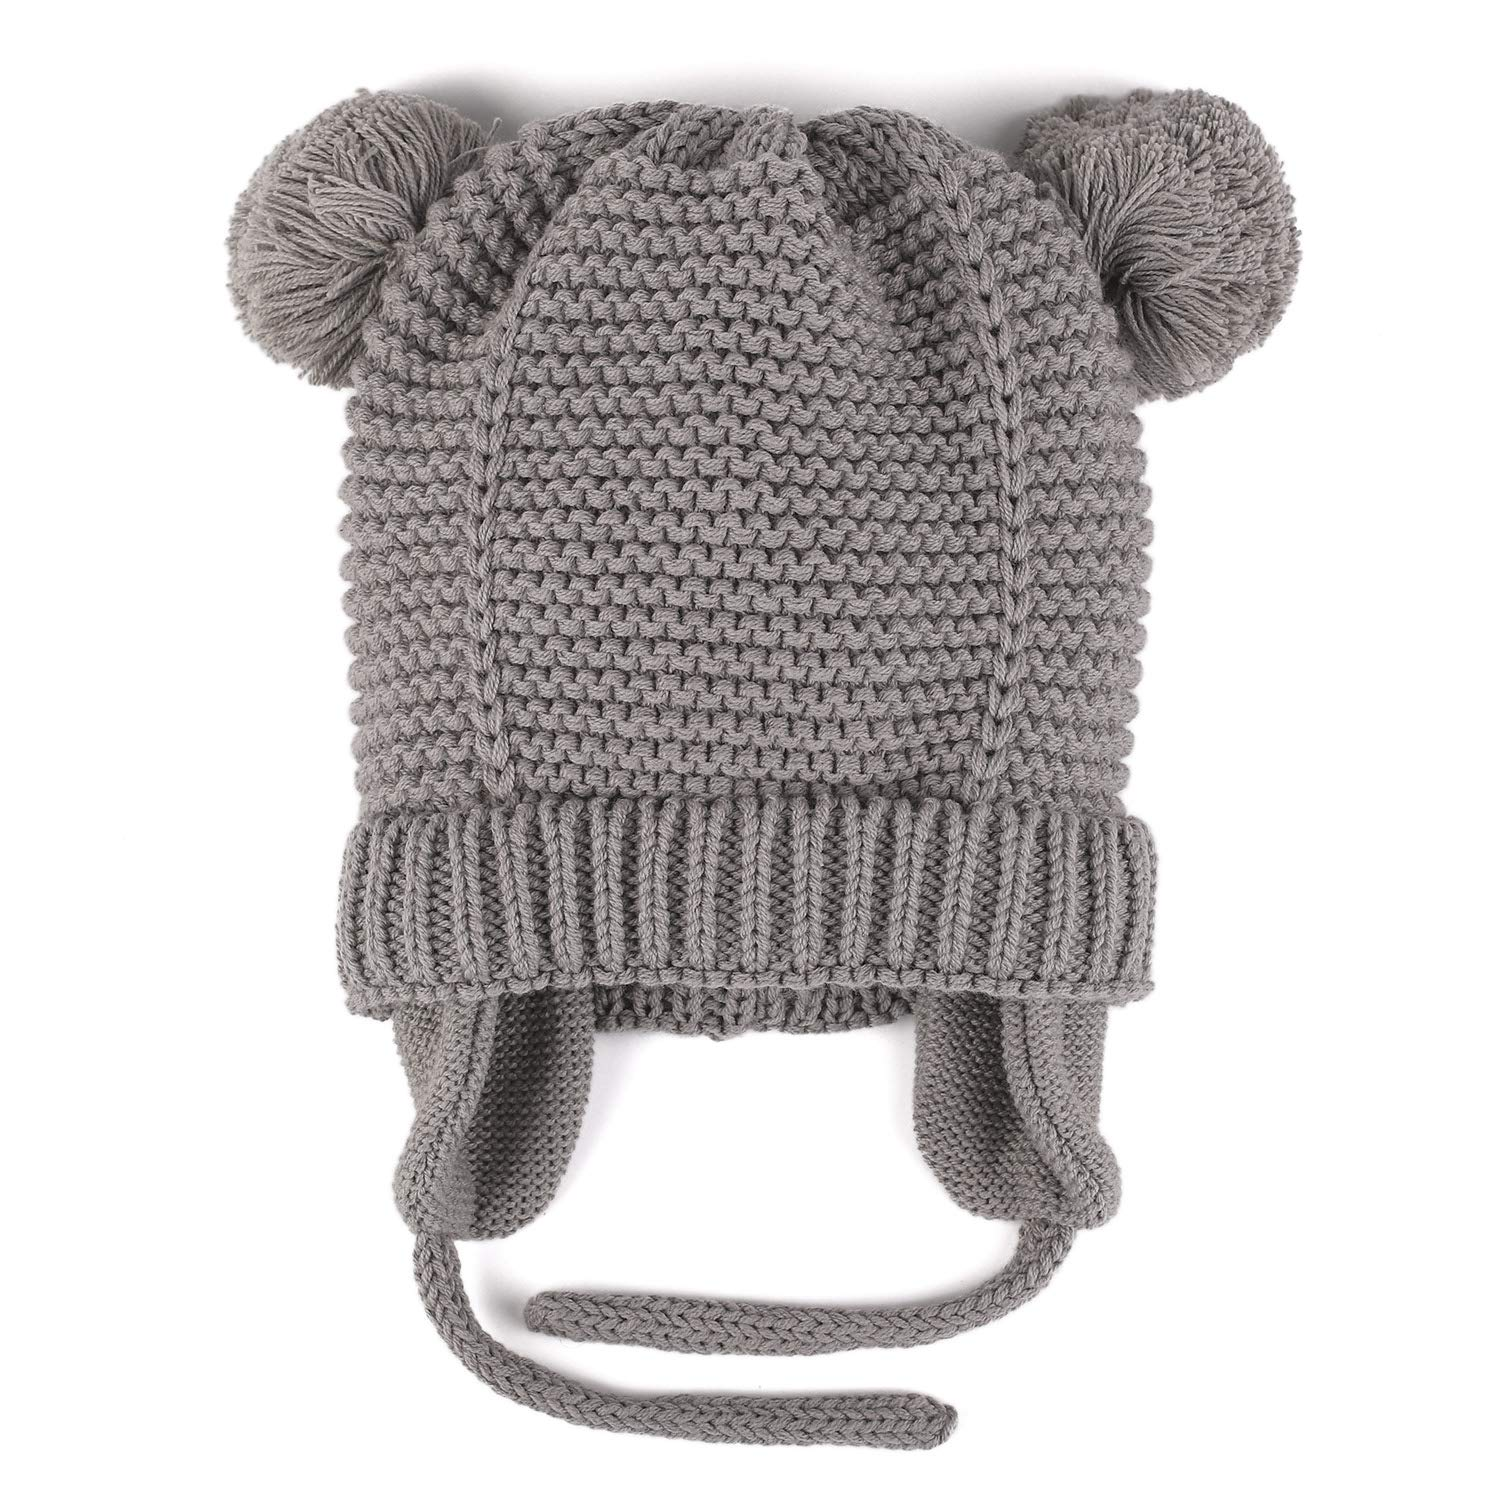 013336bc Amazon.com: Flammi Knit Earflap Hat Velvet Lined Warm Beanie with ...